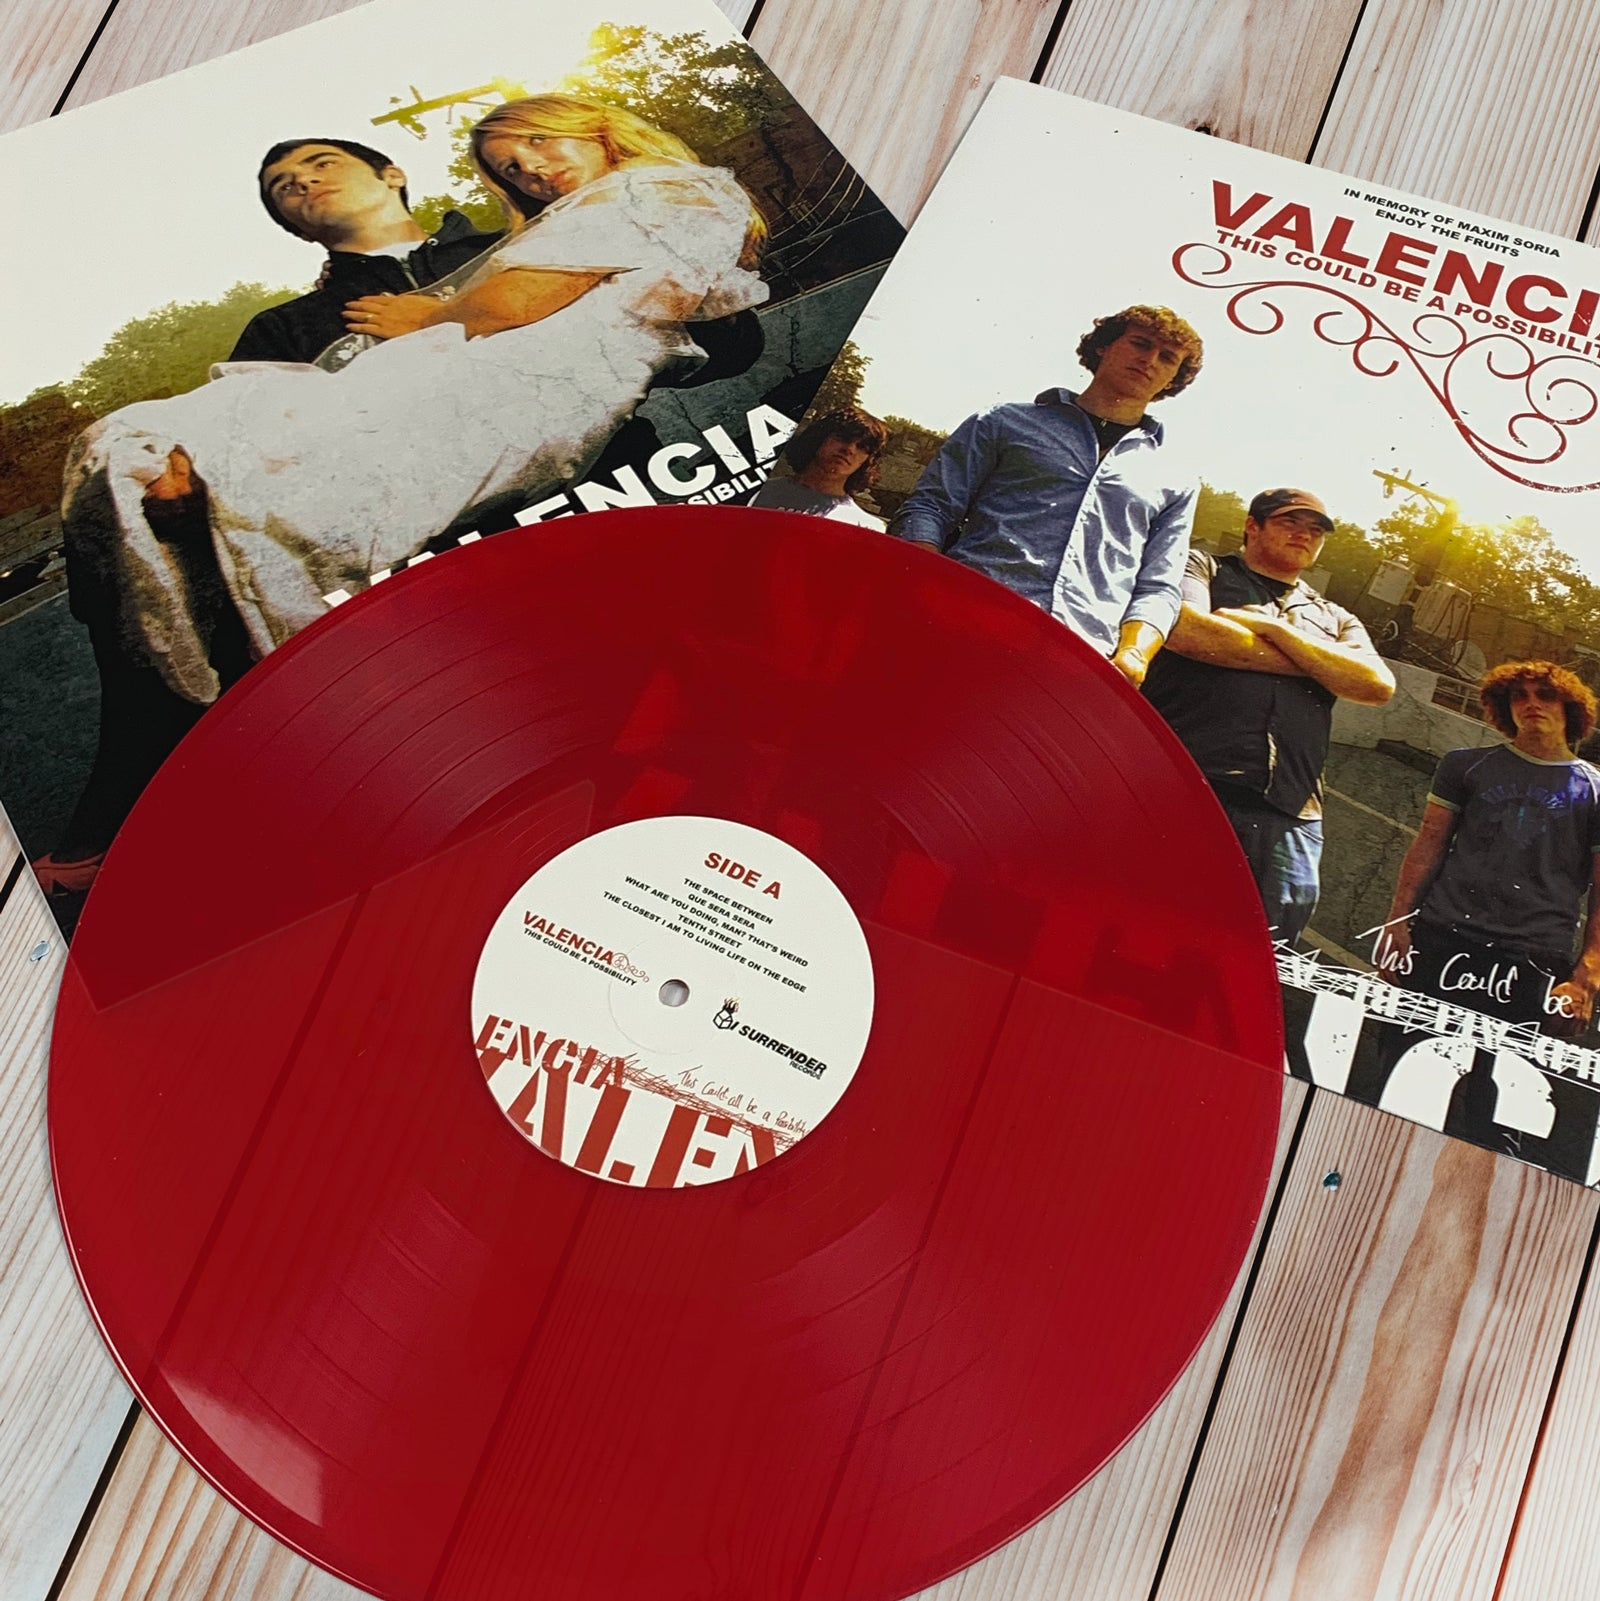 VALENCIA - THIS COULD BE A POSSIBILITY - 12 VINYL